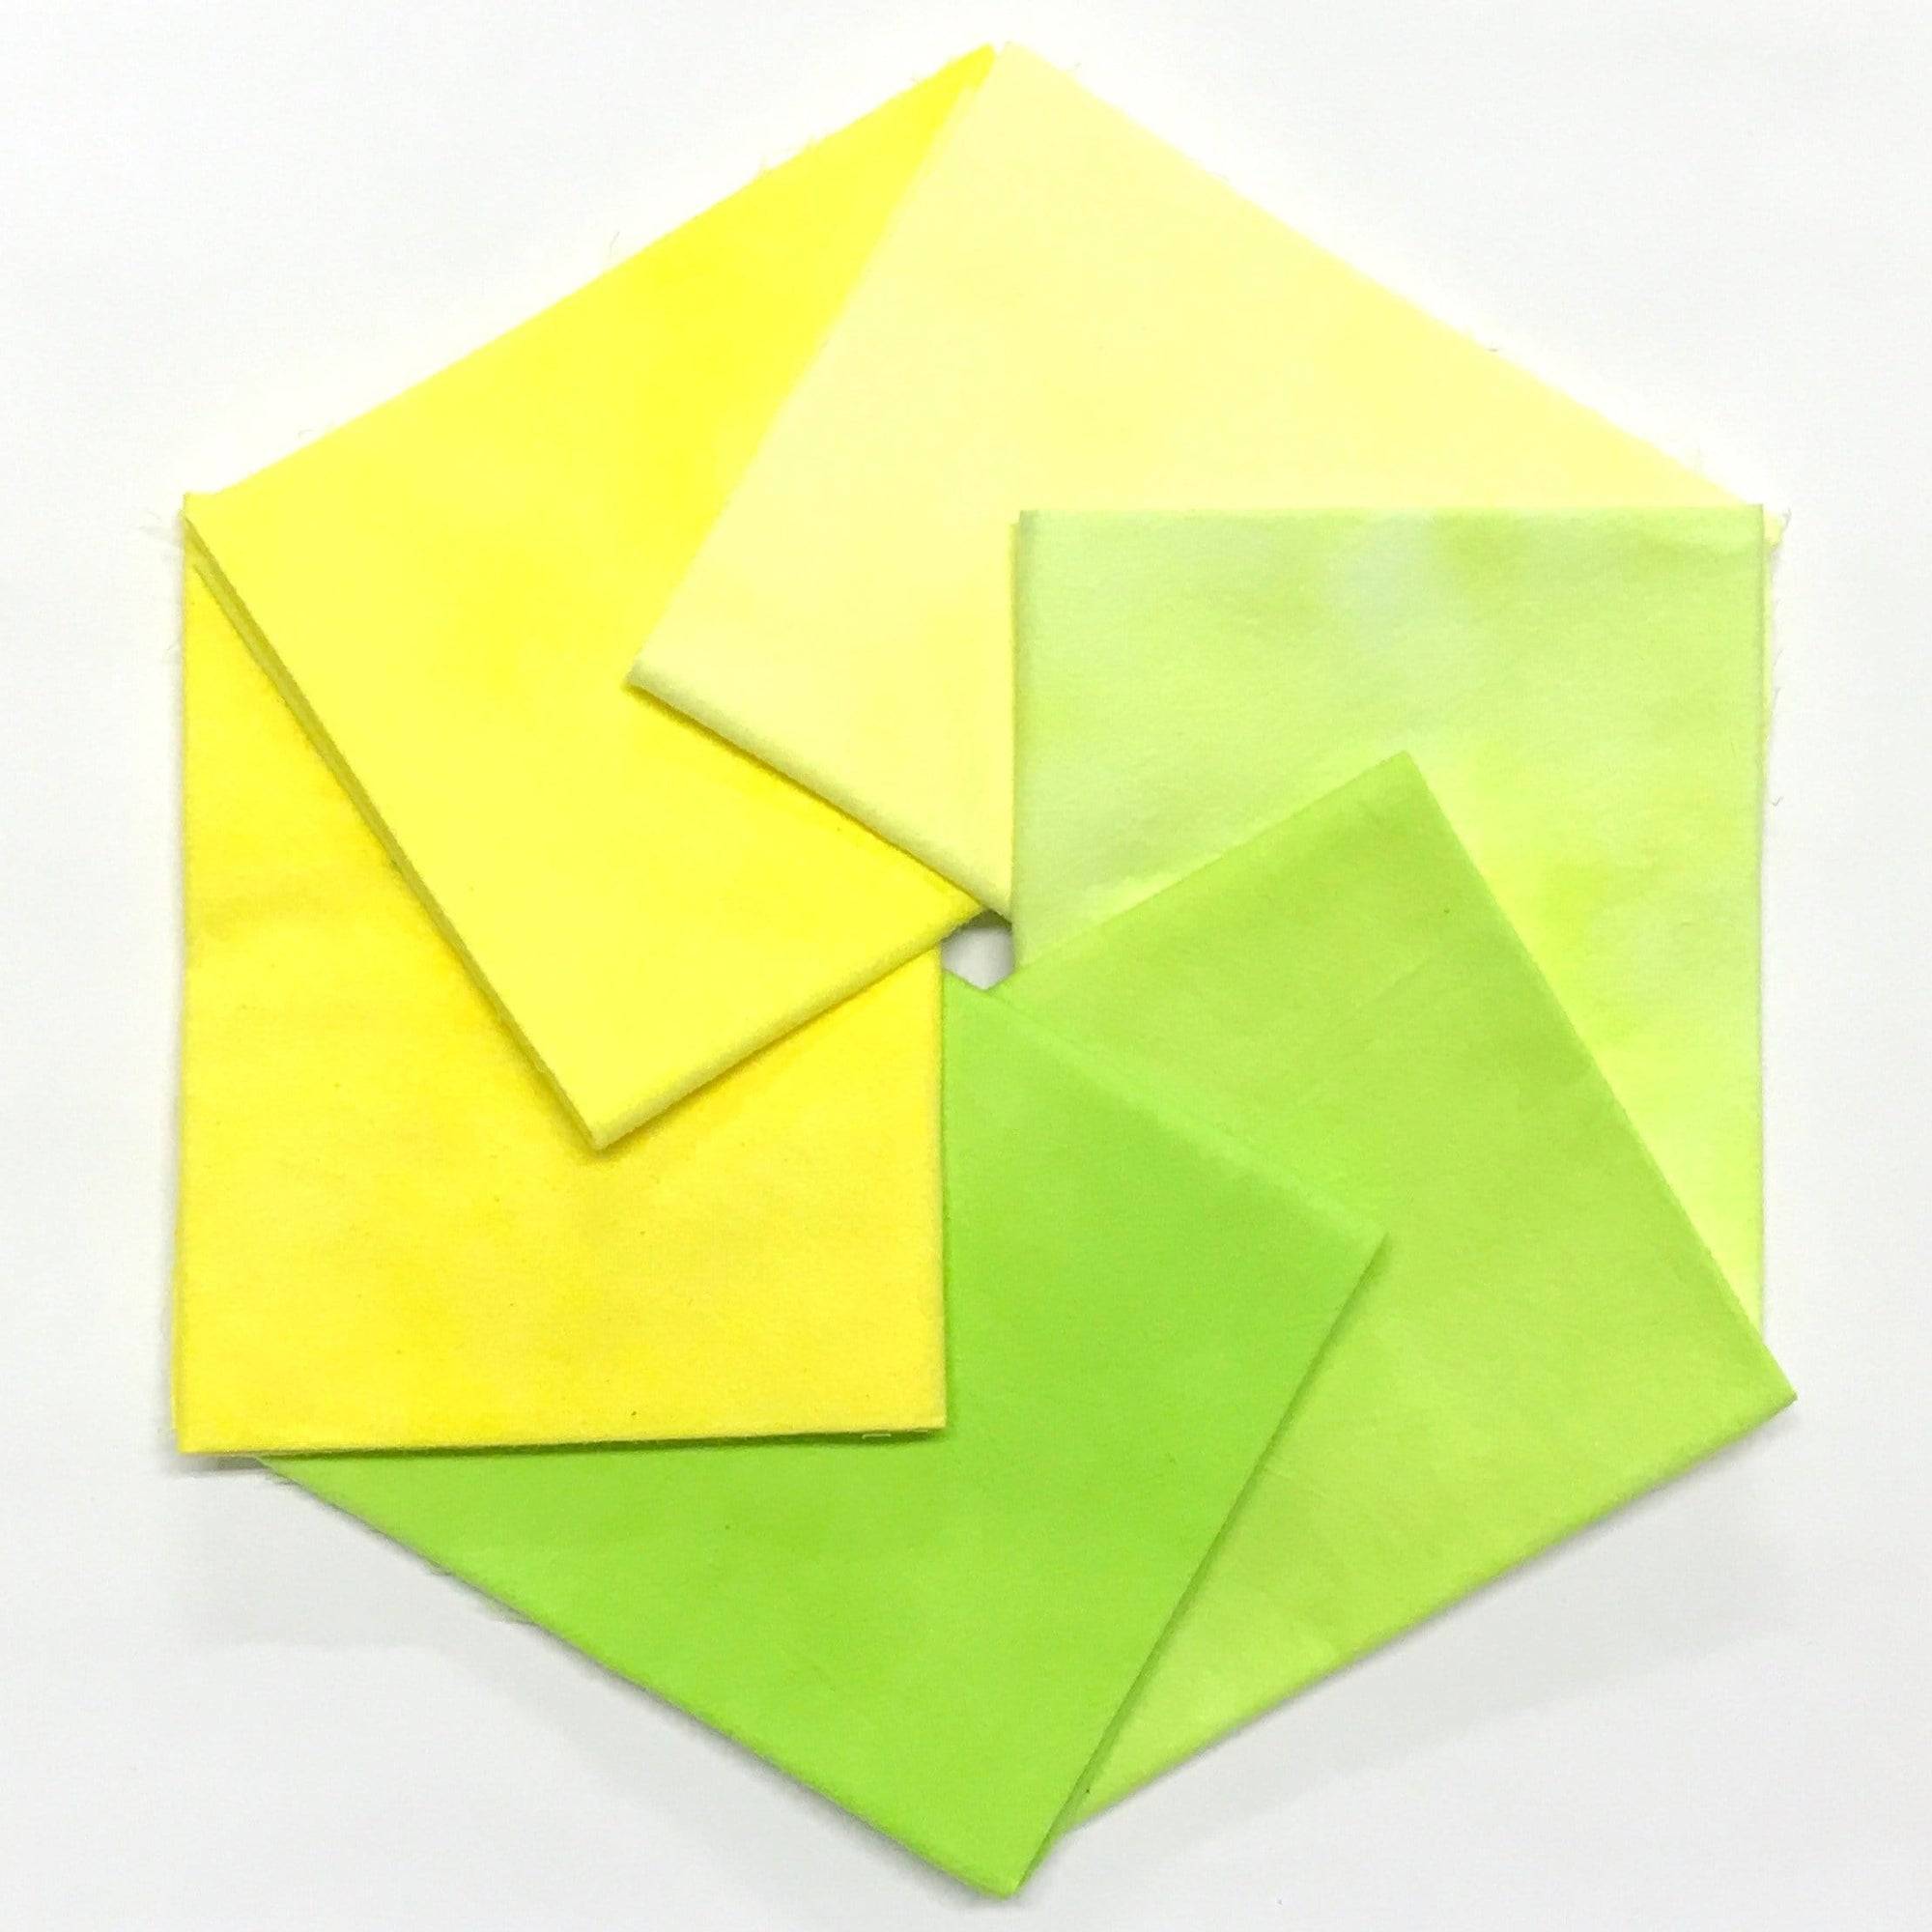 Lemon-Lime - Scrap Packs